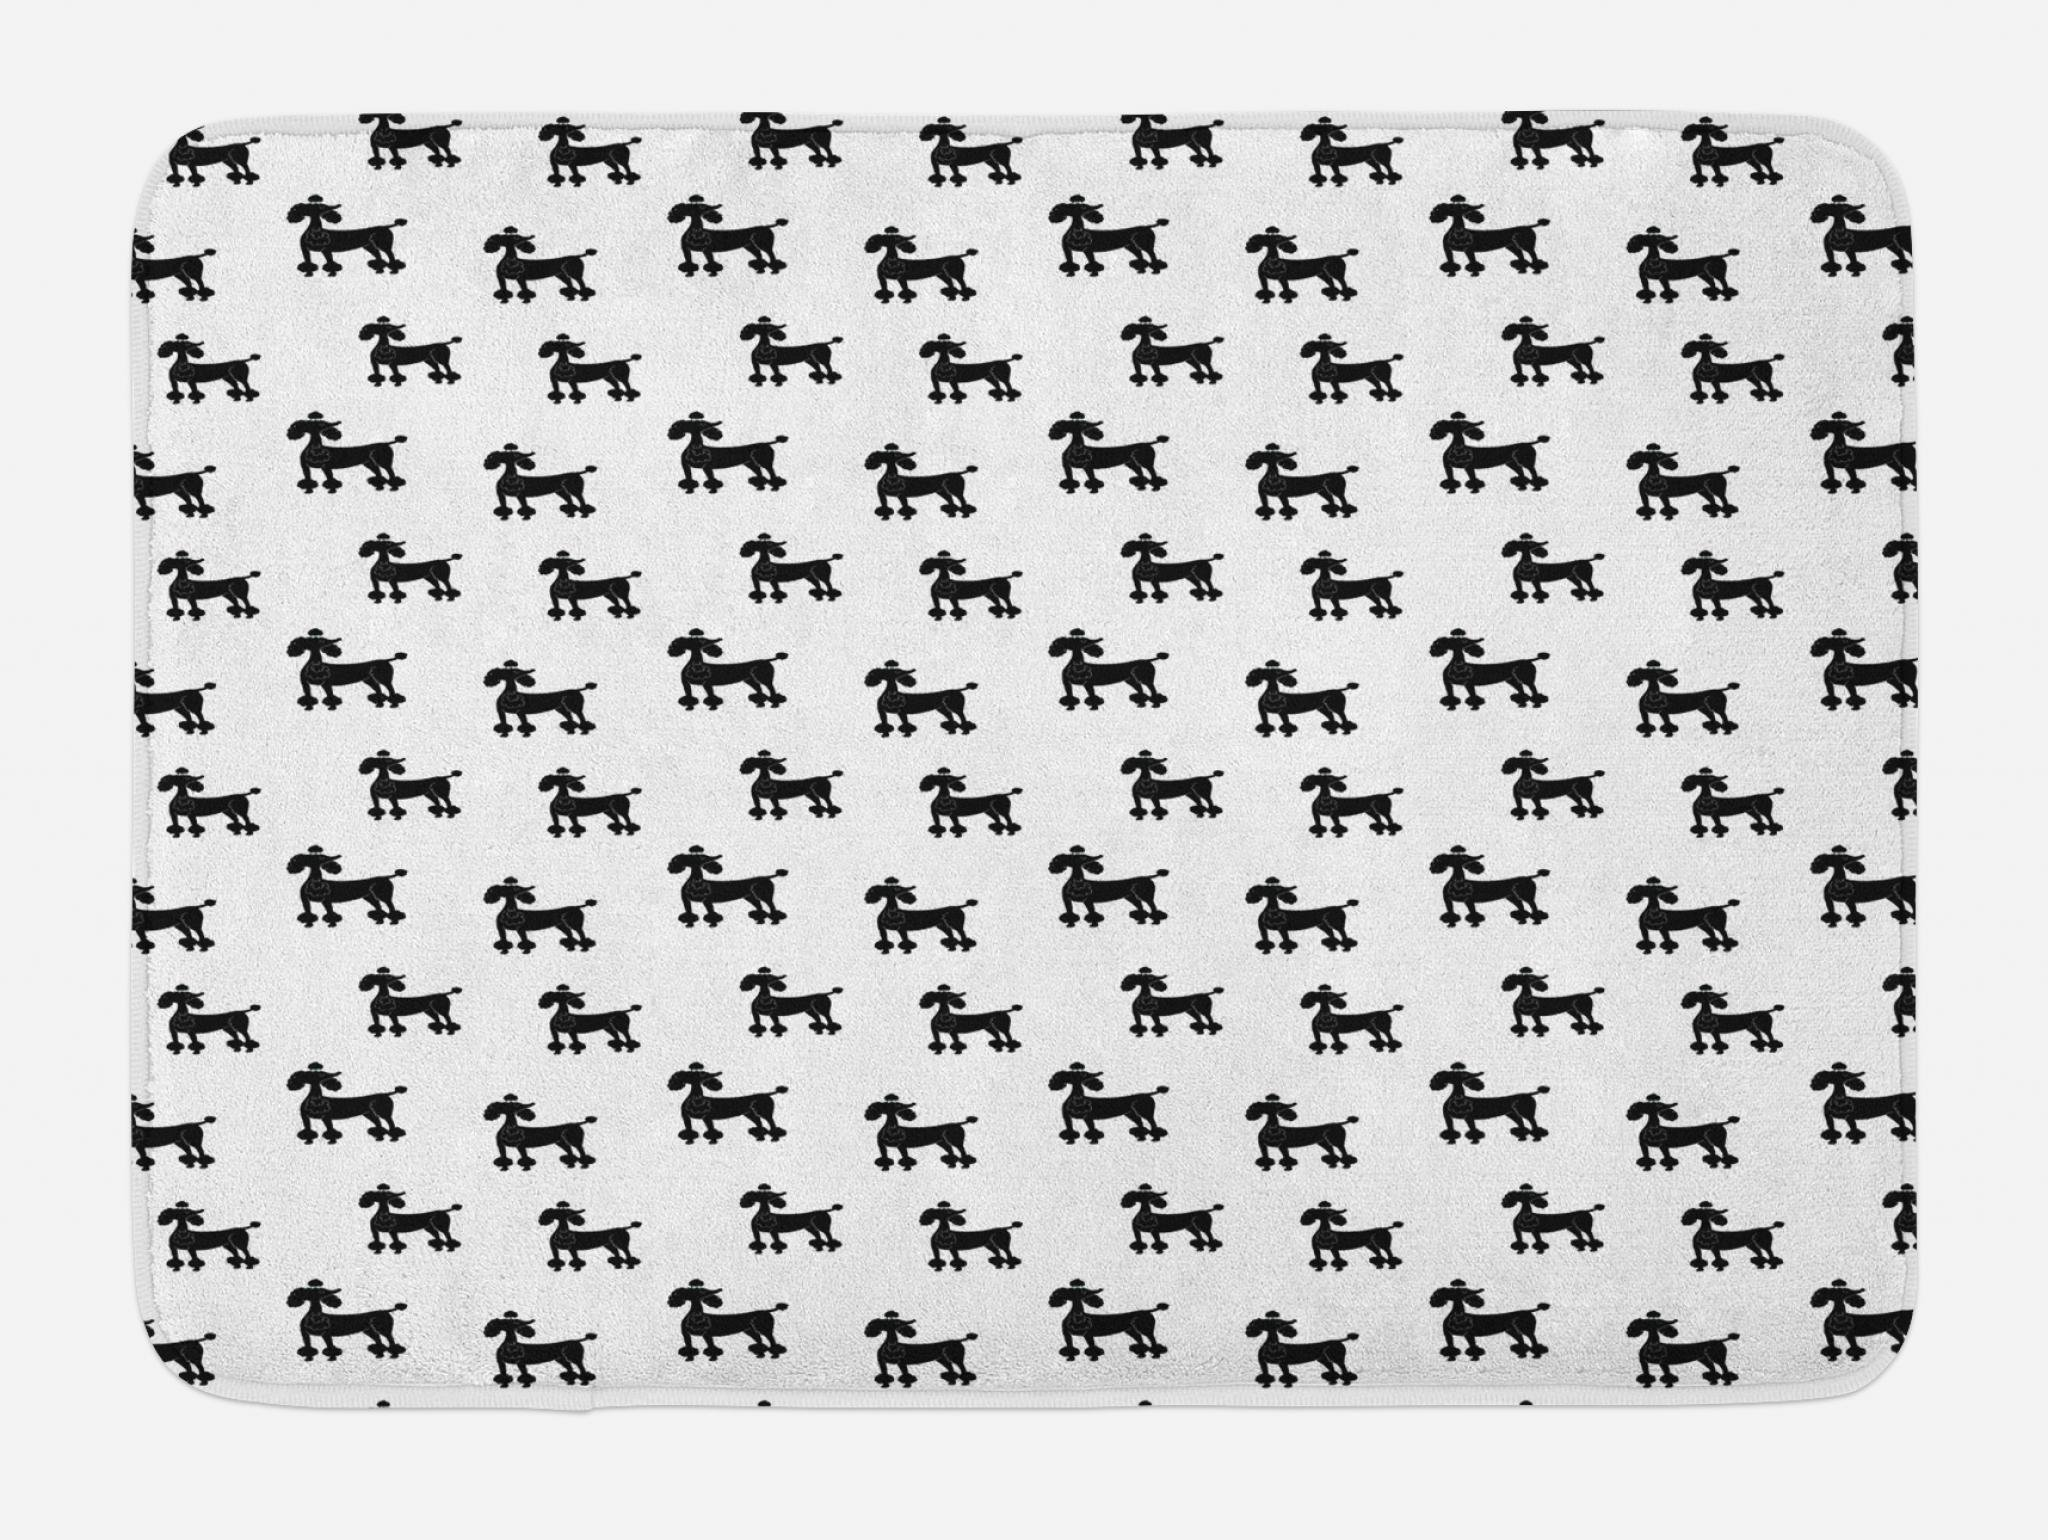 Lunarable Dogs Bath Mat, Cute Poodle Puppy Silhouette Animals in Monochrome Minimalist Artistic Design, Plush Bathroom Decor Mat with Non Slip Backing, 29.5 W X 17.5 W Inches, Black and White by Lunarable